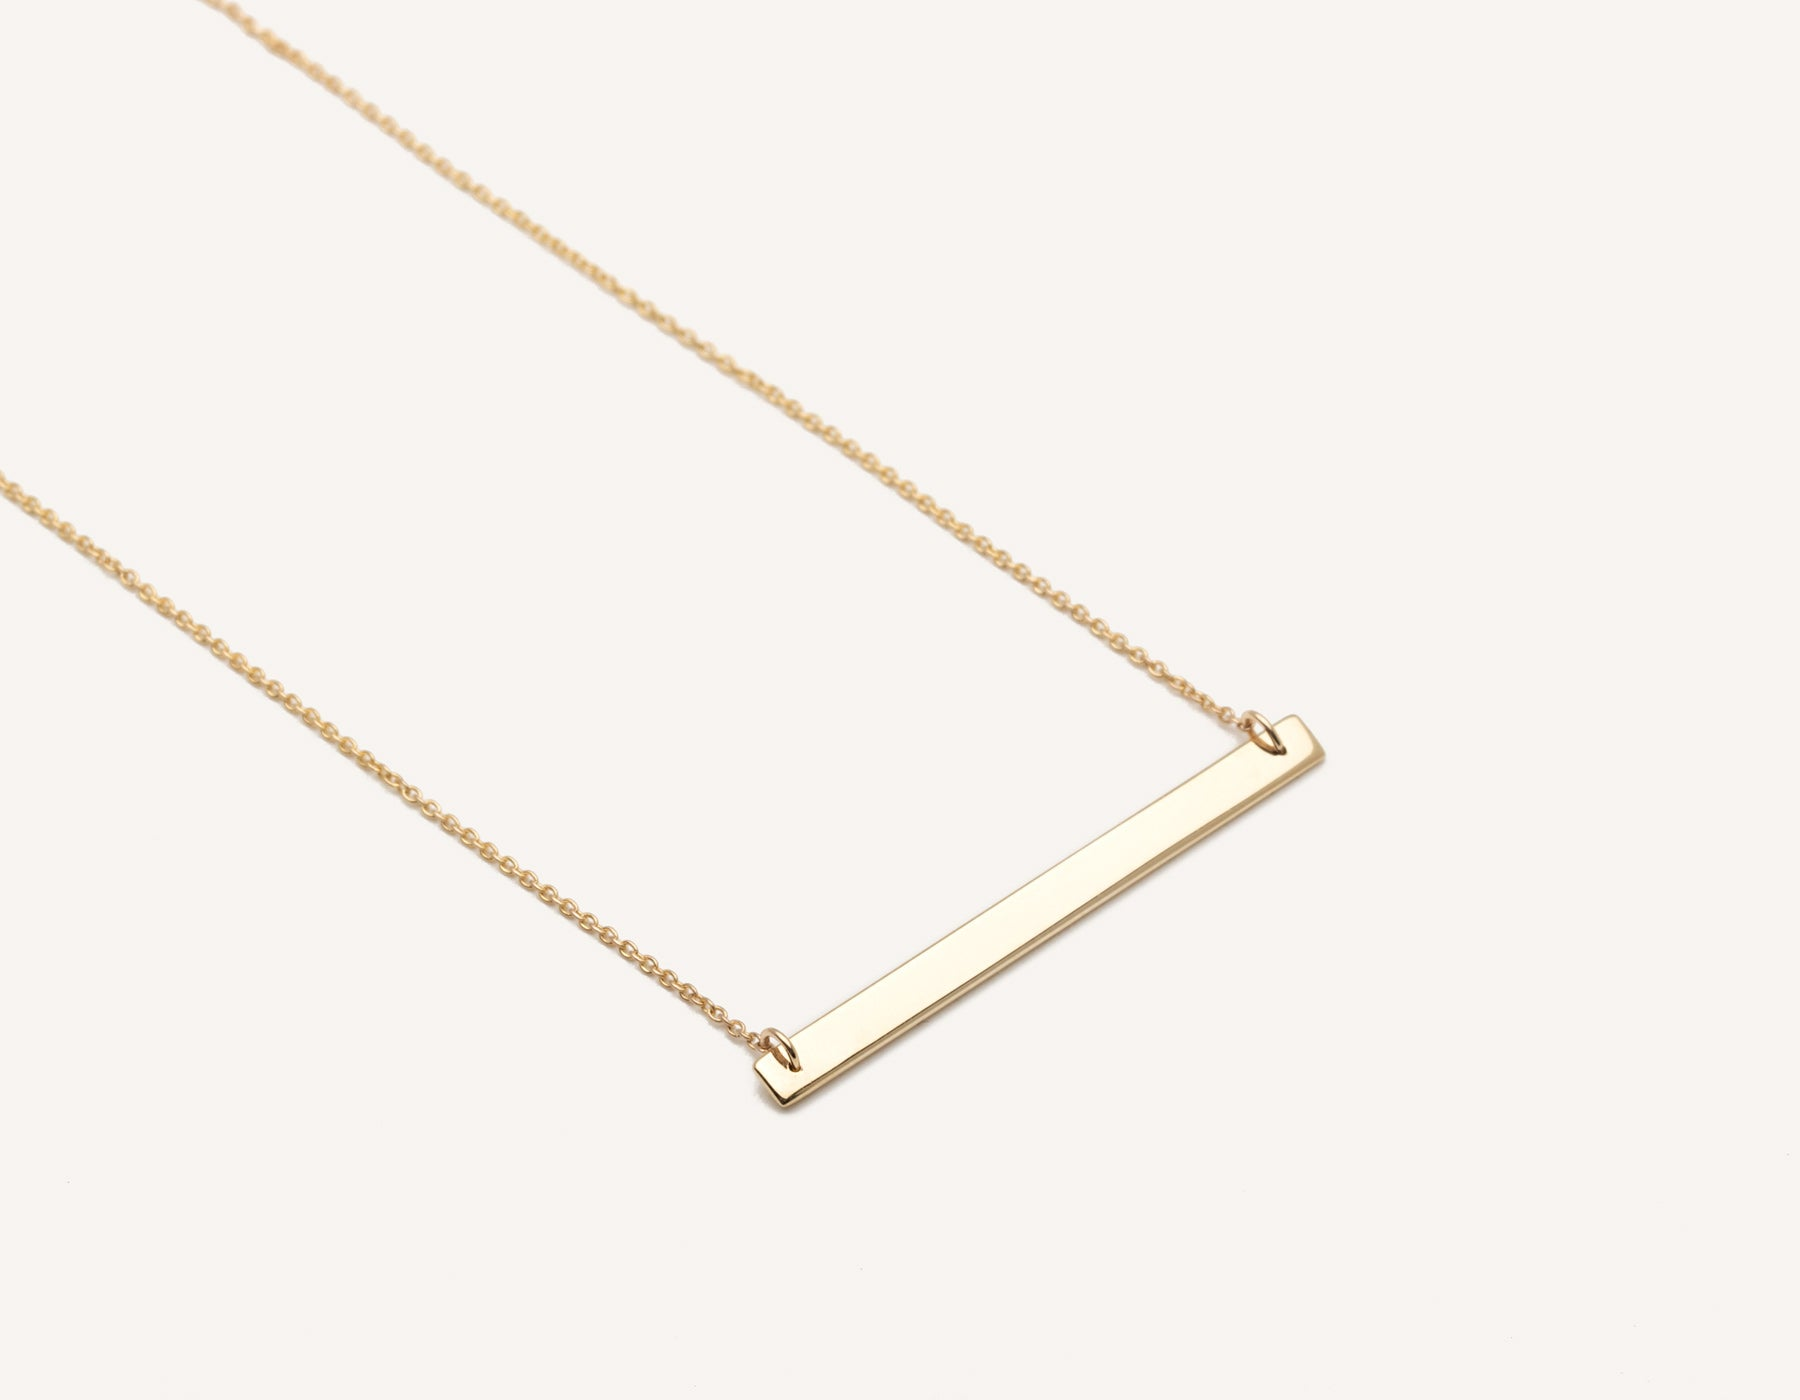 super popular 4342d ba8ec simple custom 14k solid gold thin Bar Necklace on delicate 17 inch chain by  Vrai